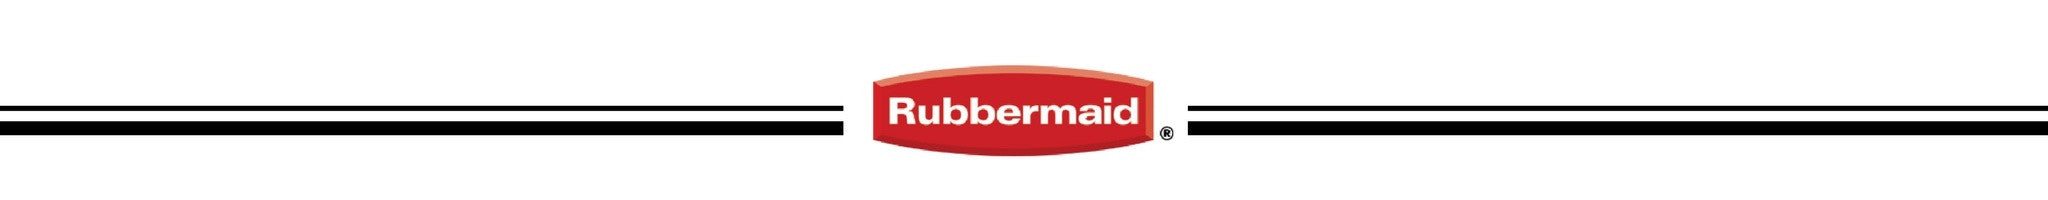 Rubbermaid Company Information